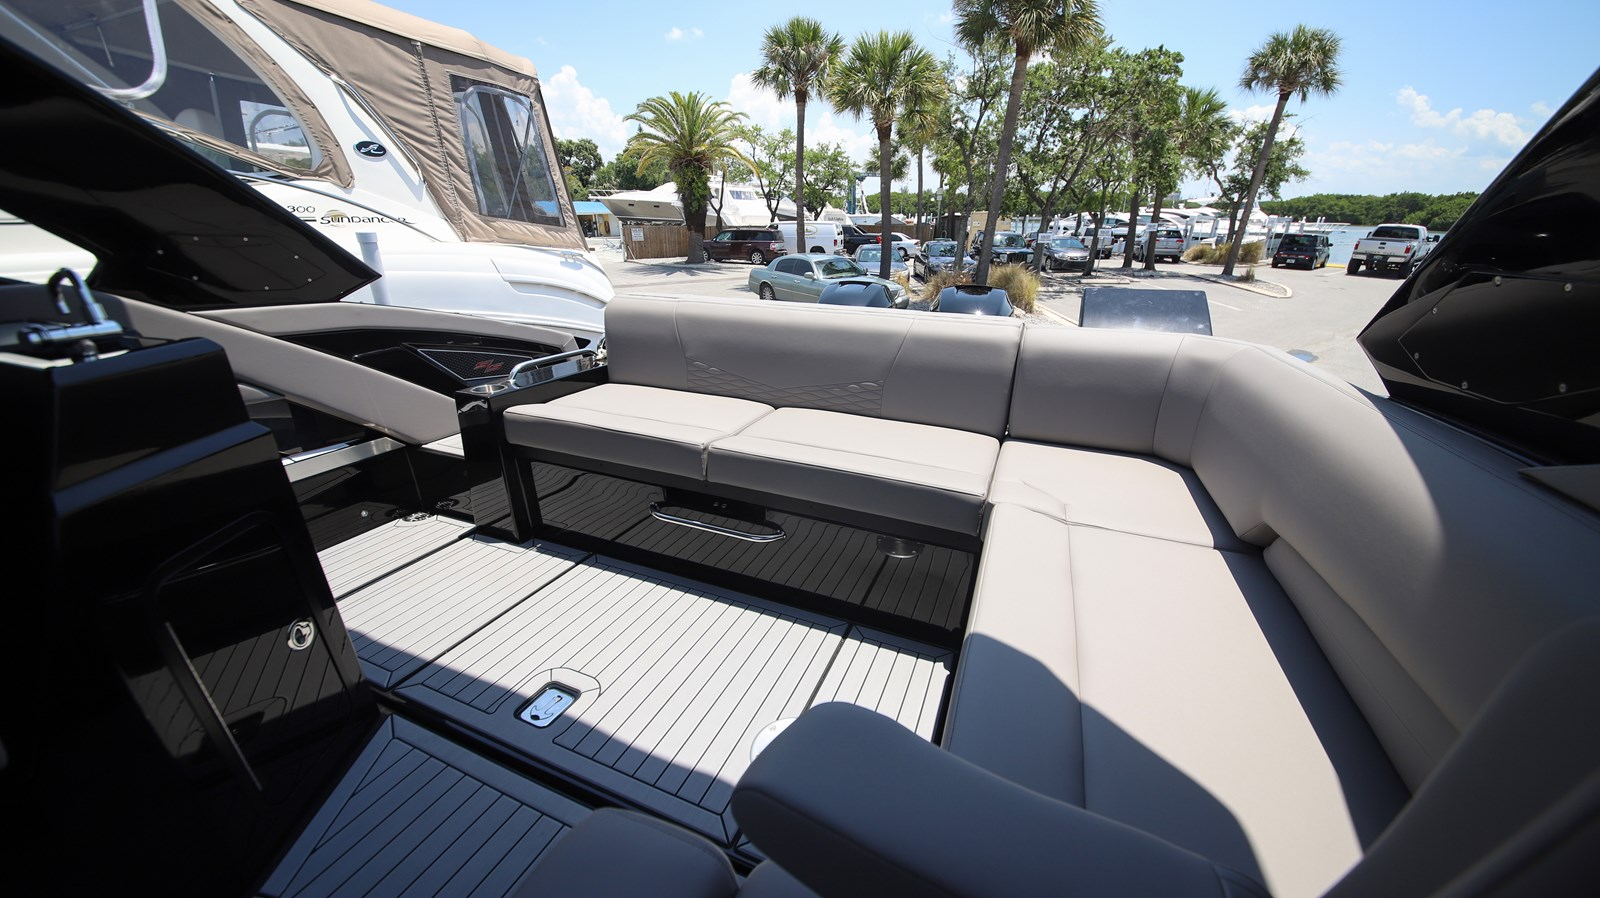 2019 Cruisers 338 2019 Cruisers Yachts 338 South Beach Bowrider Runabout 2541766